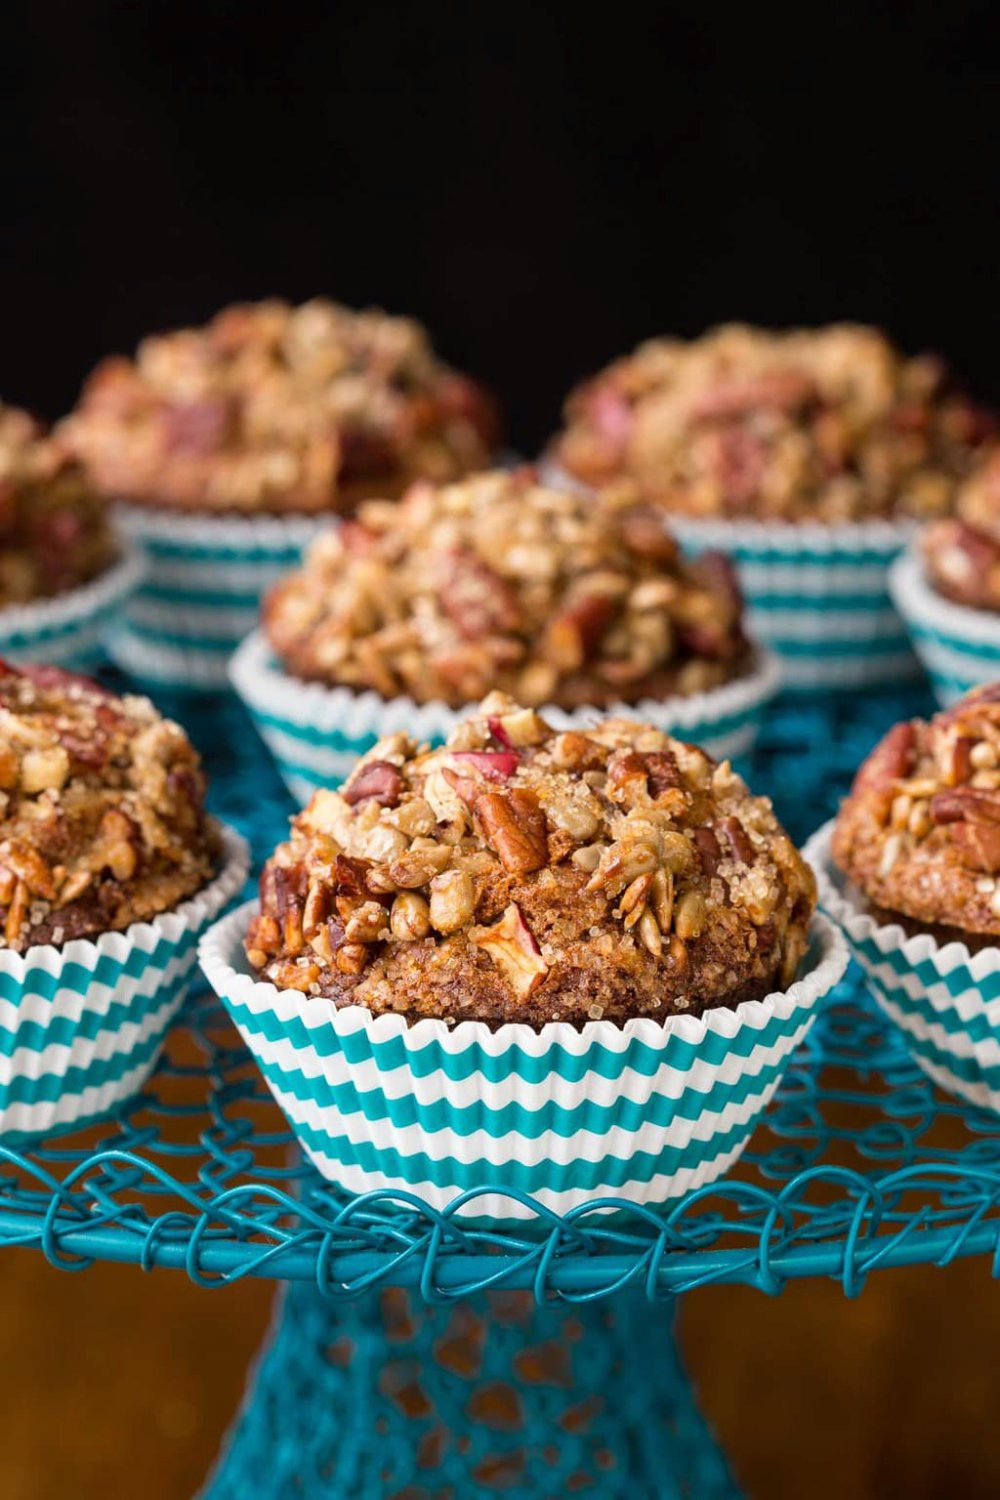 Morning Glory Muffins with Candied Pecan Topping